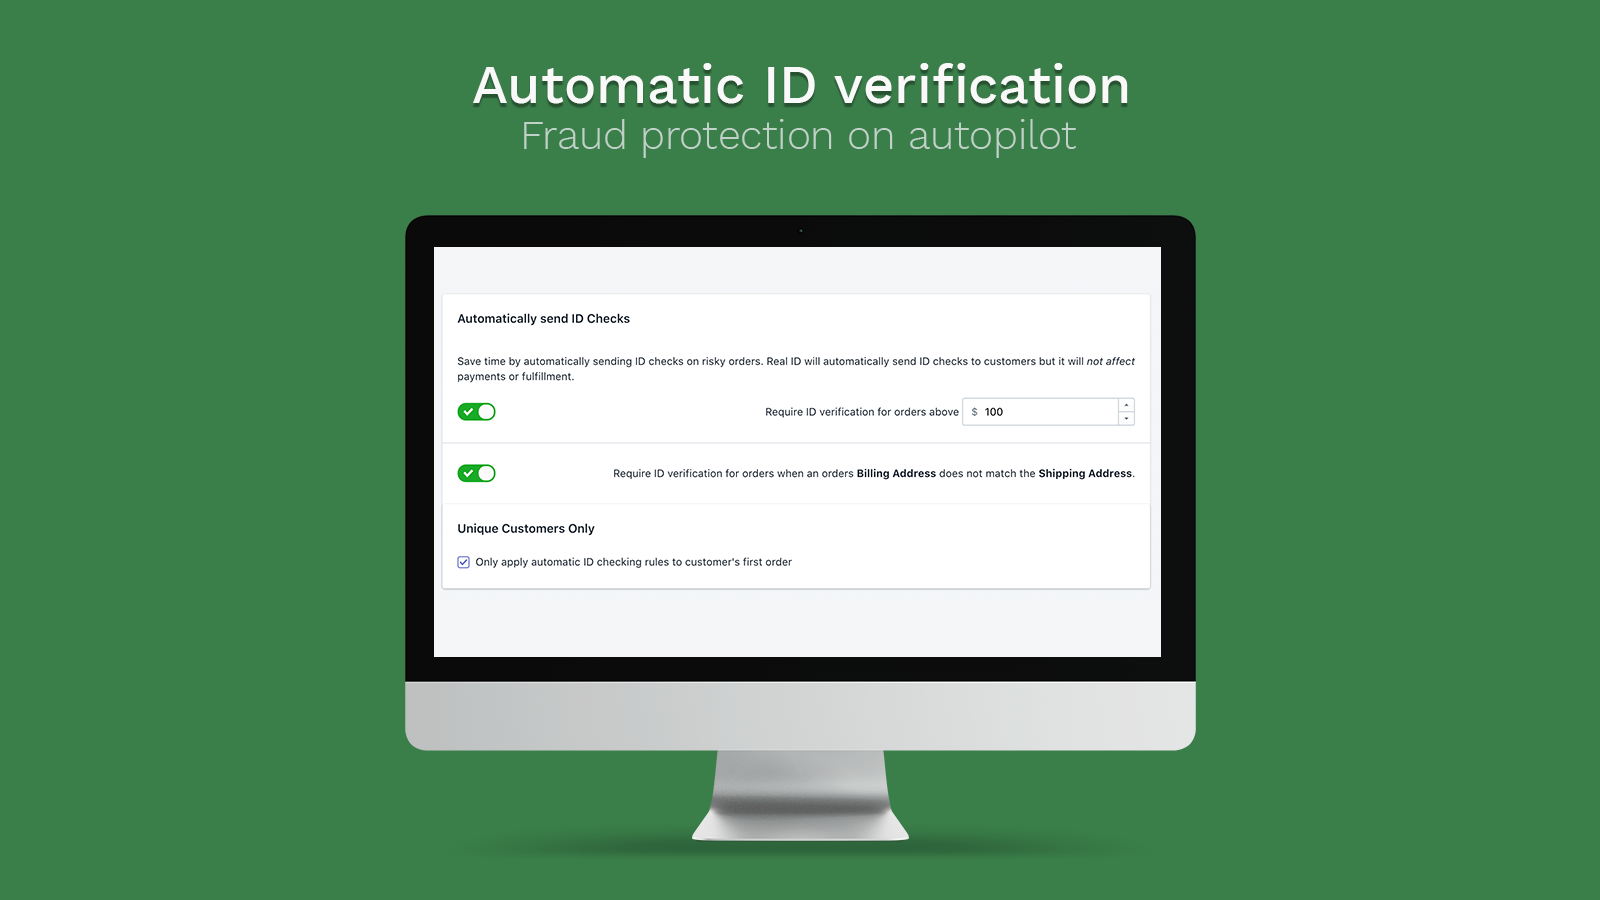 Automatically require verification of high risk orders